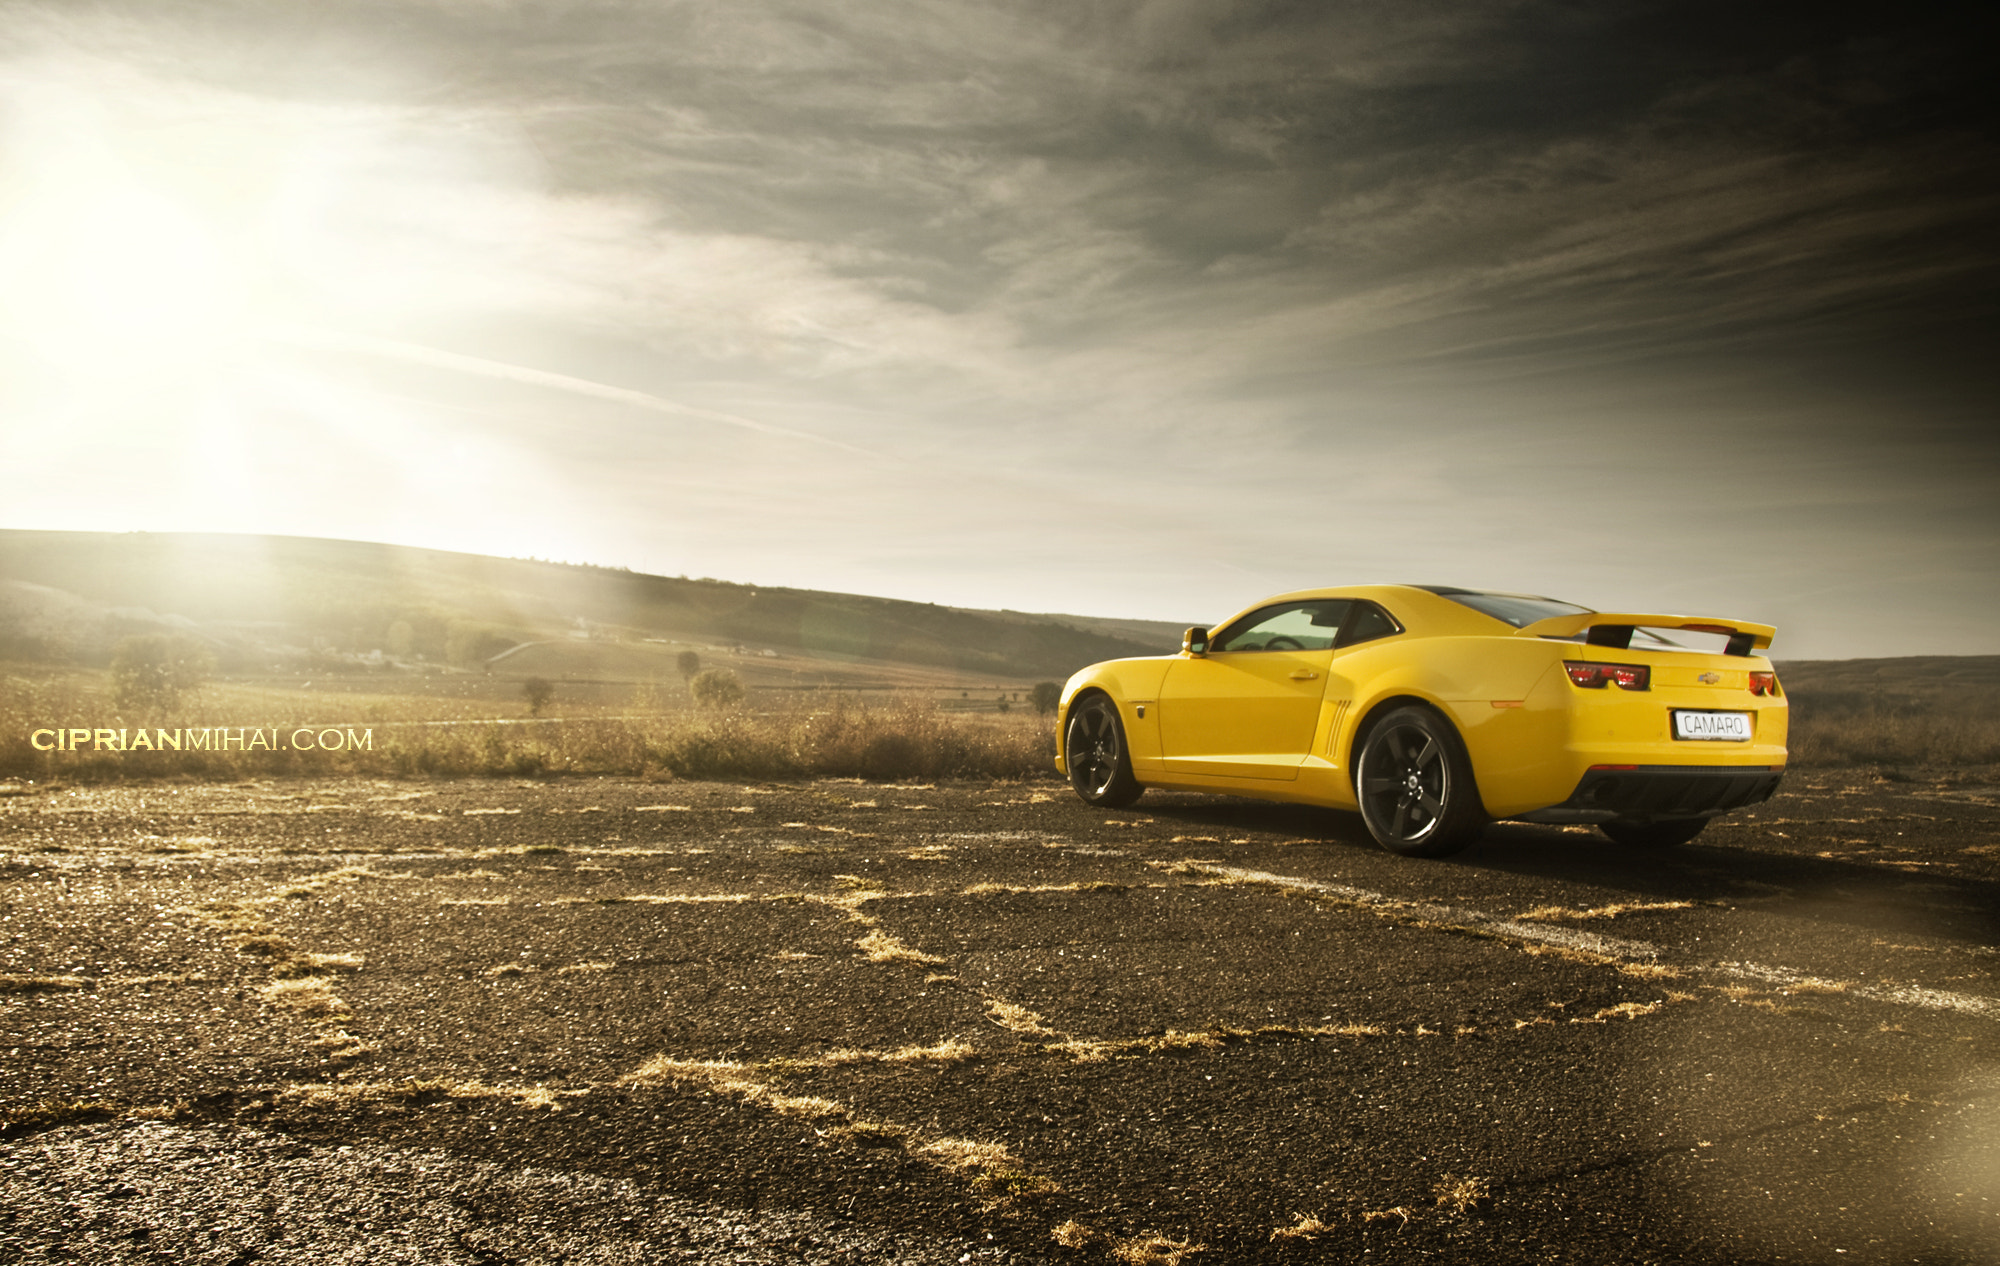 Photograph Chevrolet Camaro by Ciprian Mihai on 500px